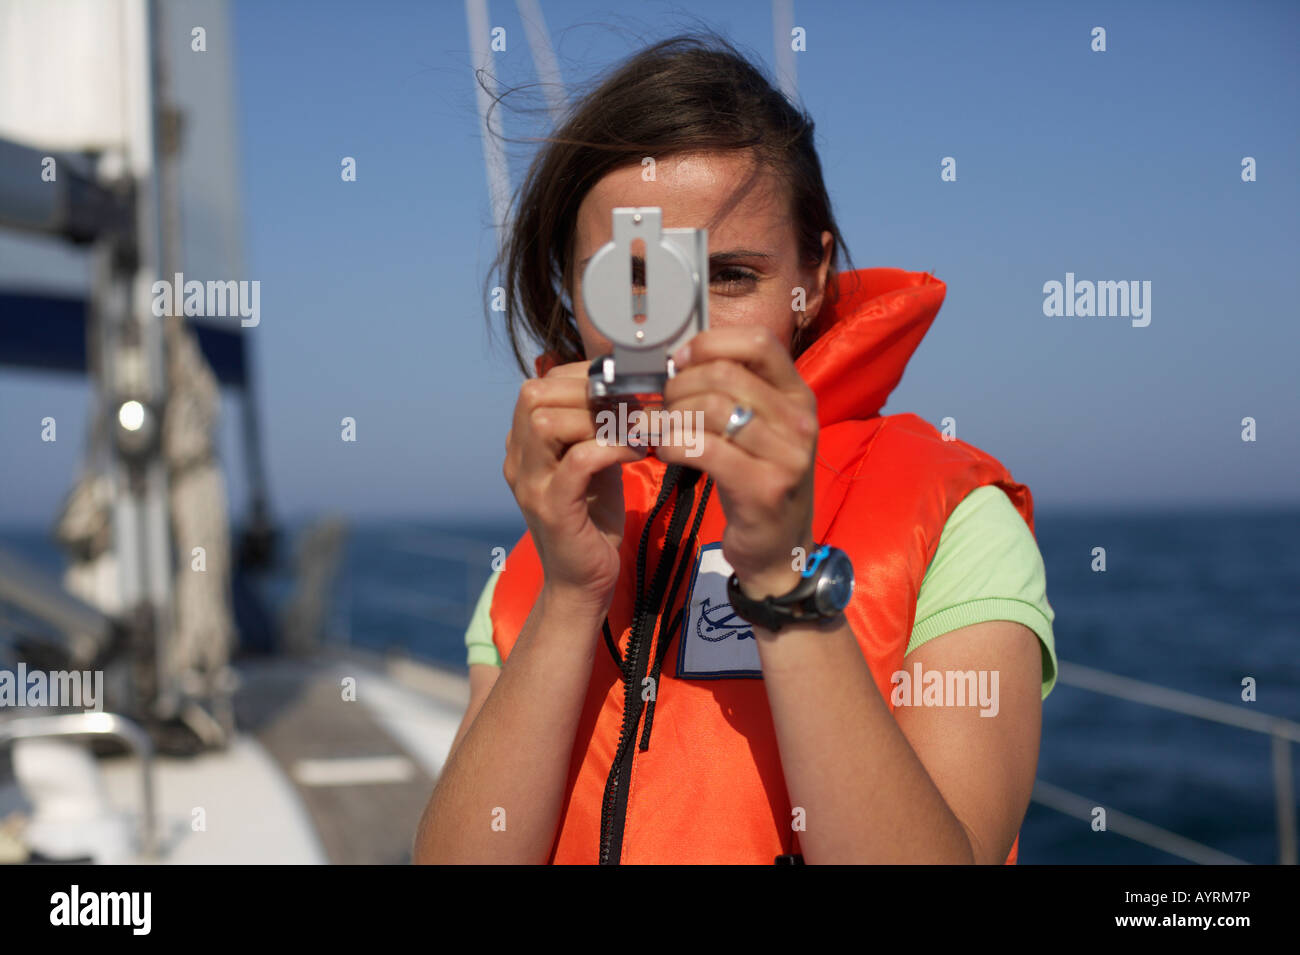 Woman Using A Compass Stock Photo